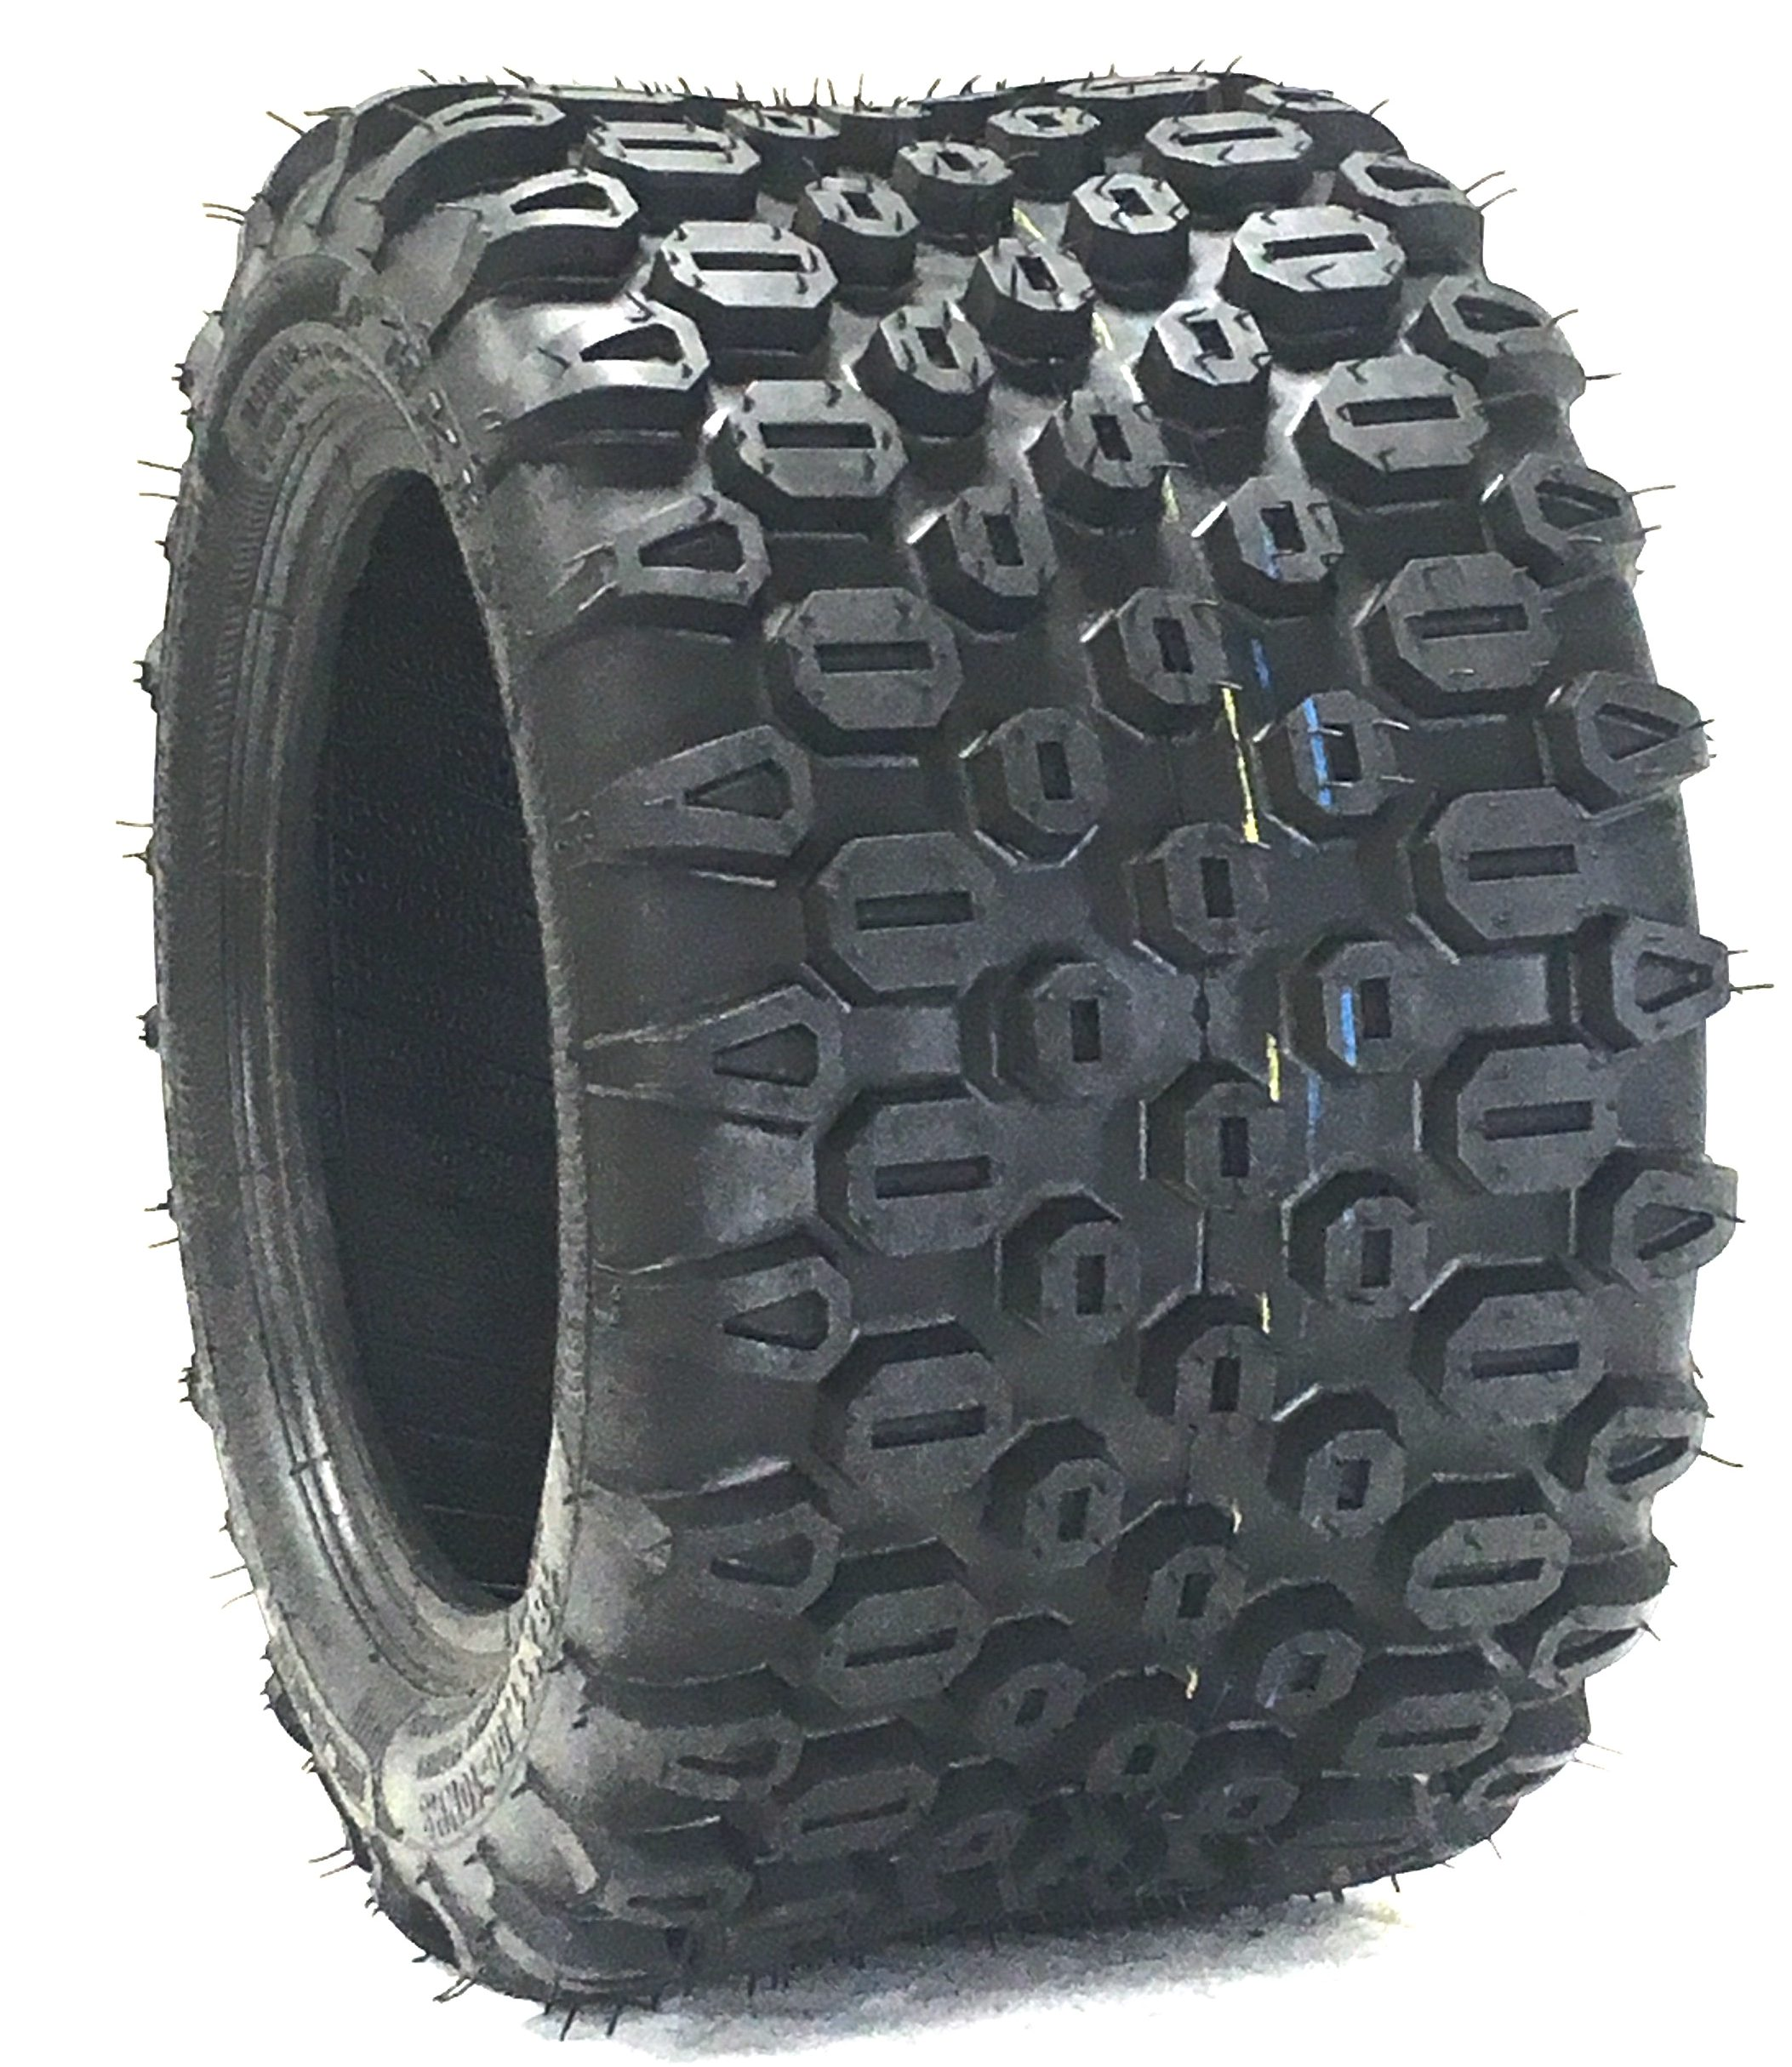 18X11.00-10 HK 45 4 PLY ATV or GOLF CART TIRES | Outdoor Tire